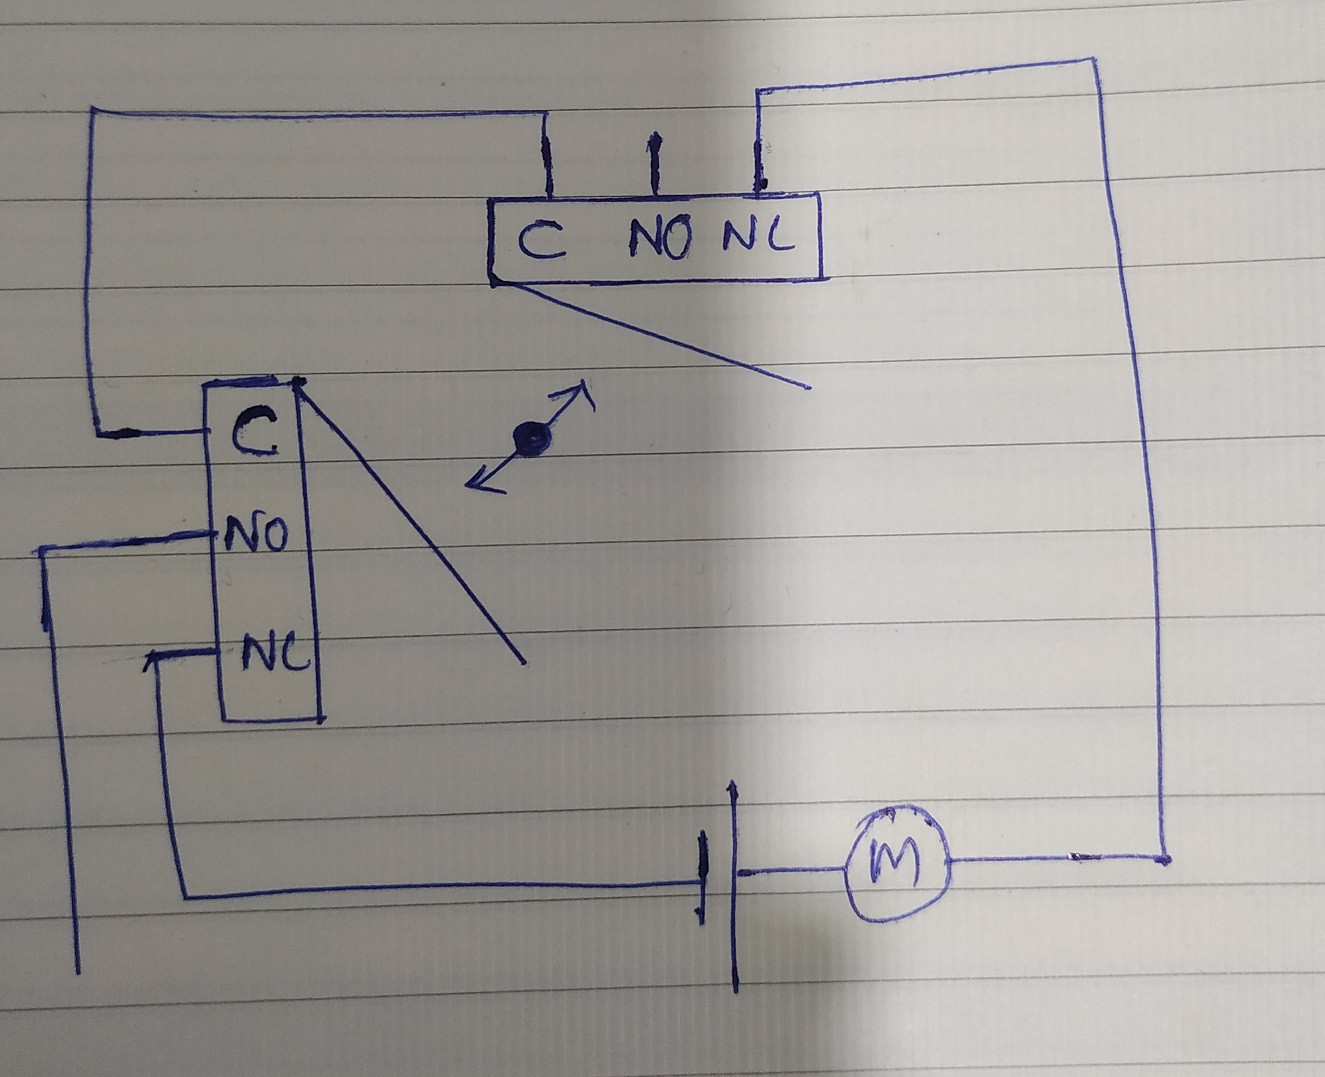 Motor With Two Endstops Using Limit Switches